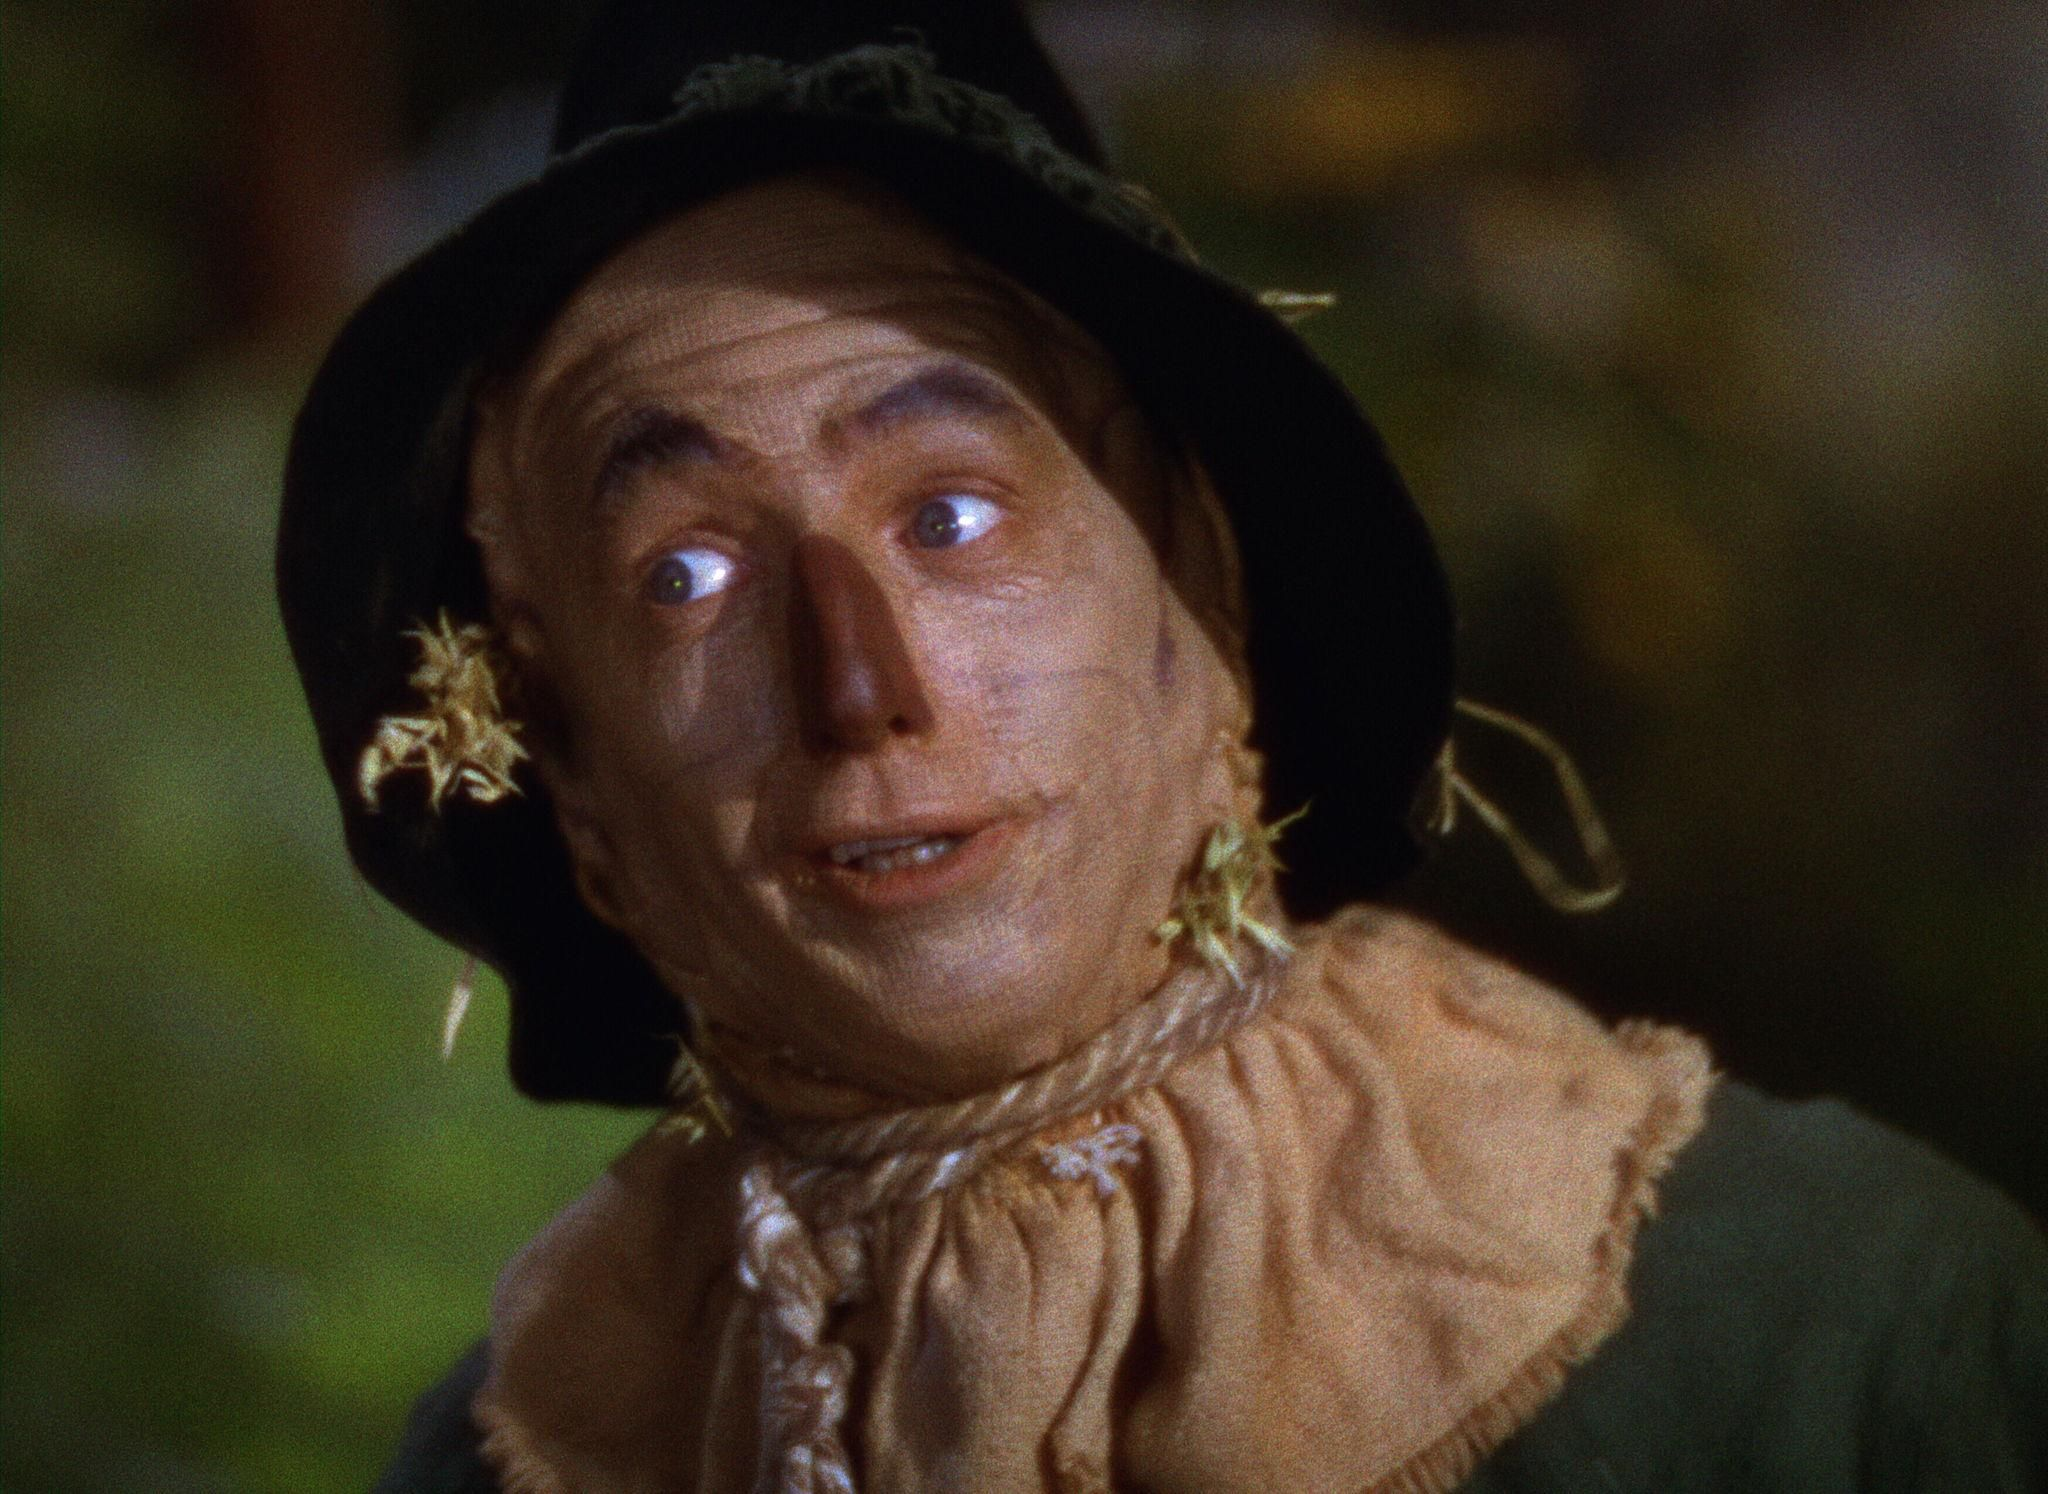 The Scarecrow Wizard of oz 1939, The wonderful wizard of